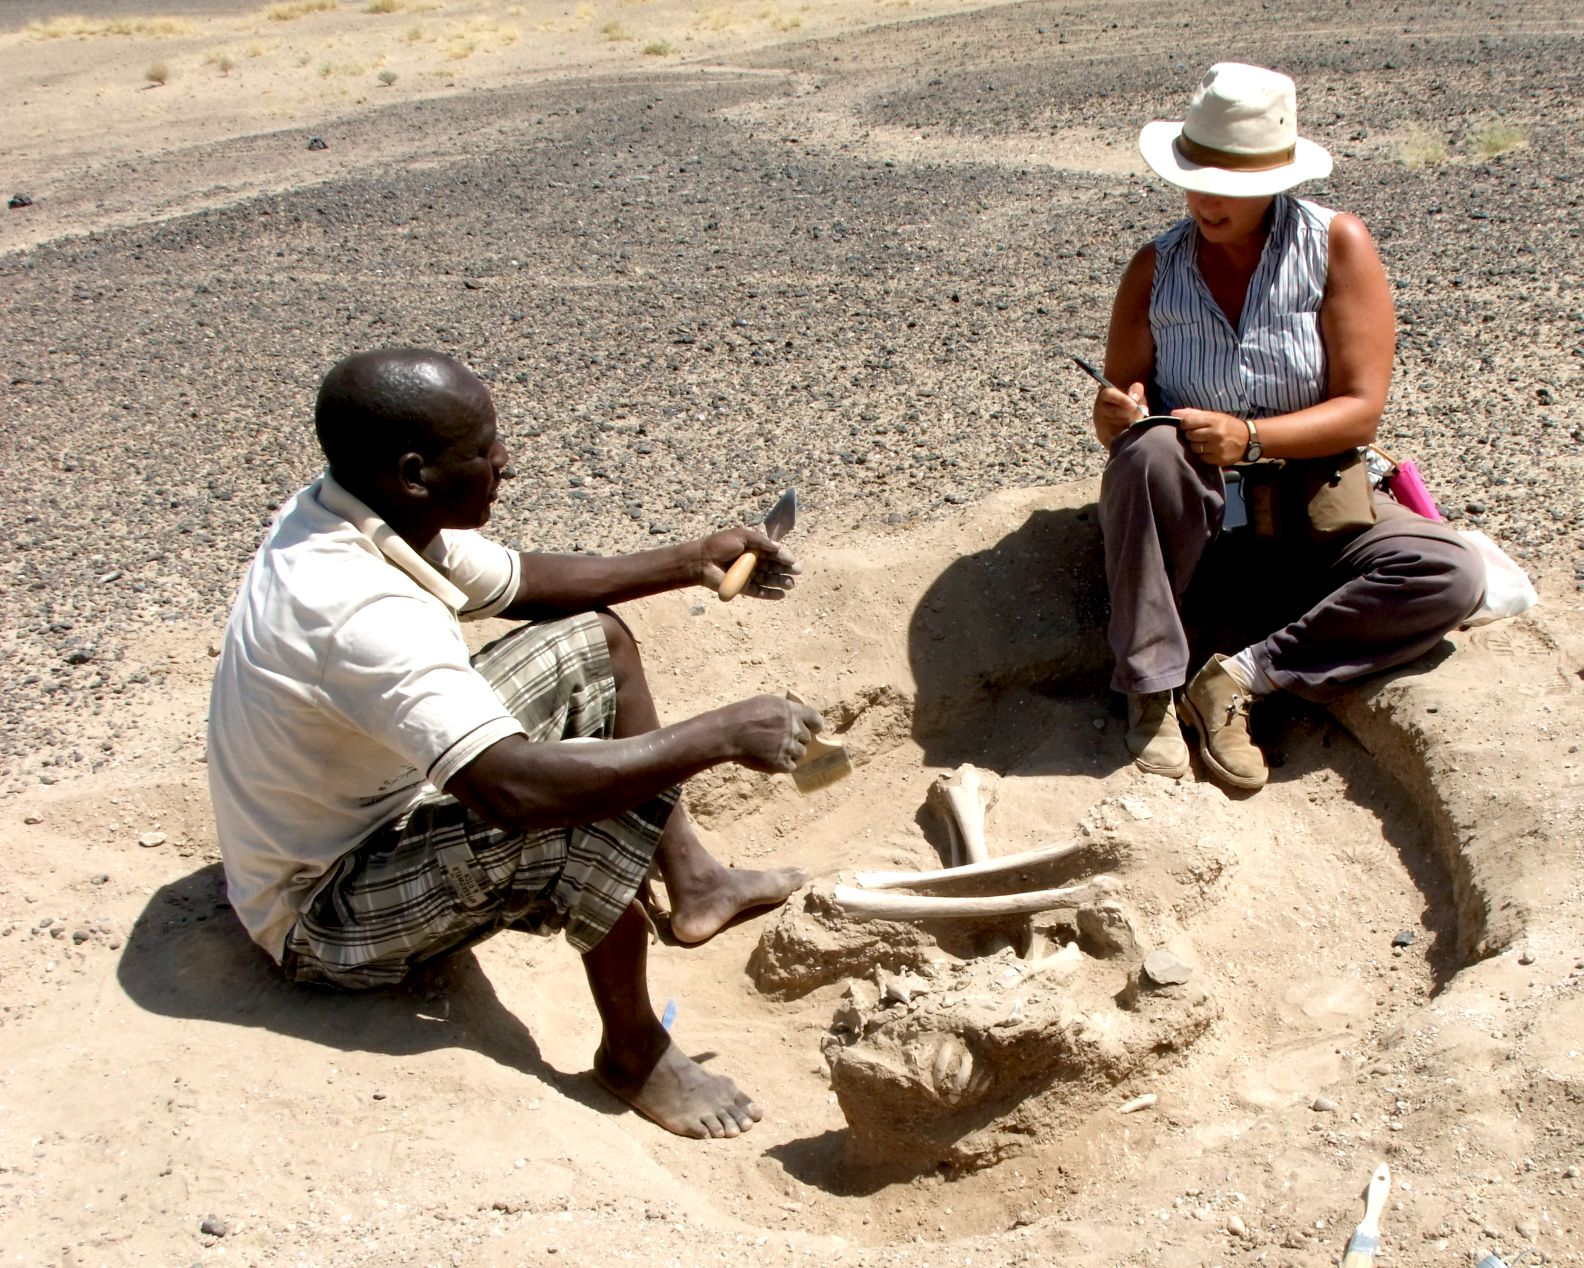 Dr Marta Mirazon Lahr & Justus Edung excavating at Nataruk, Kenya